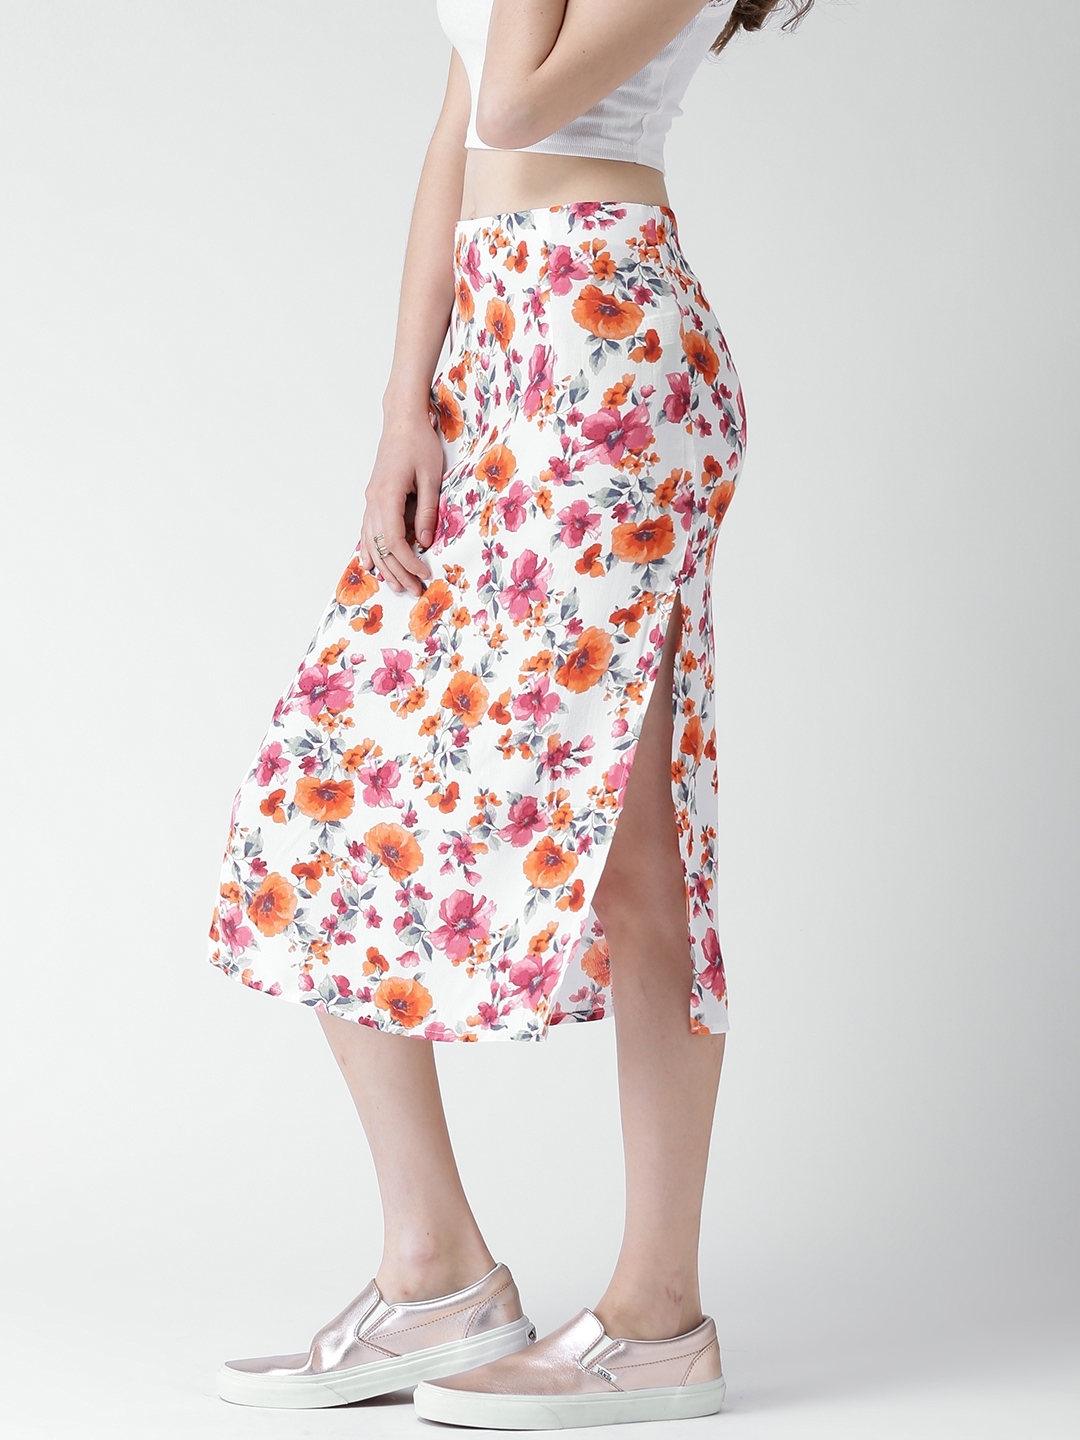 1bfff5eb0 Buy FOREVER 21 White & Pink Floral Print Pencil Skirt - Skirts for ...